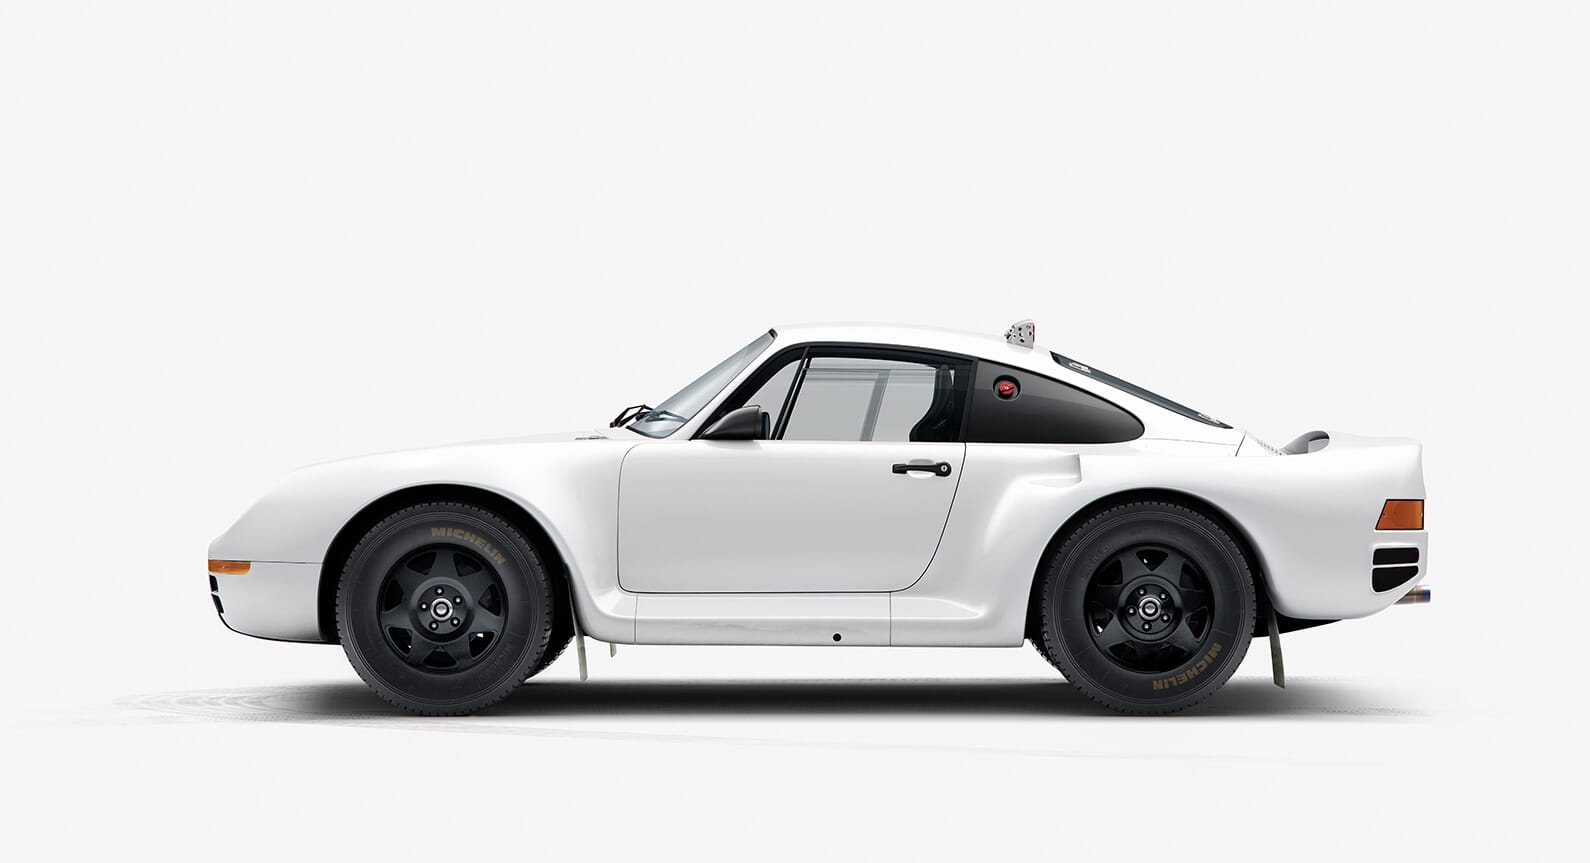 INK Pay Tribute To The Iconic Dakar Porsche 959